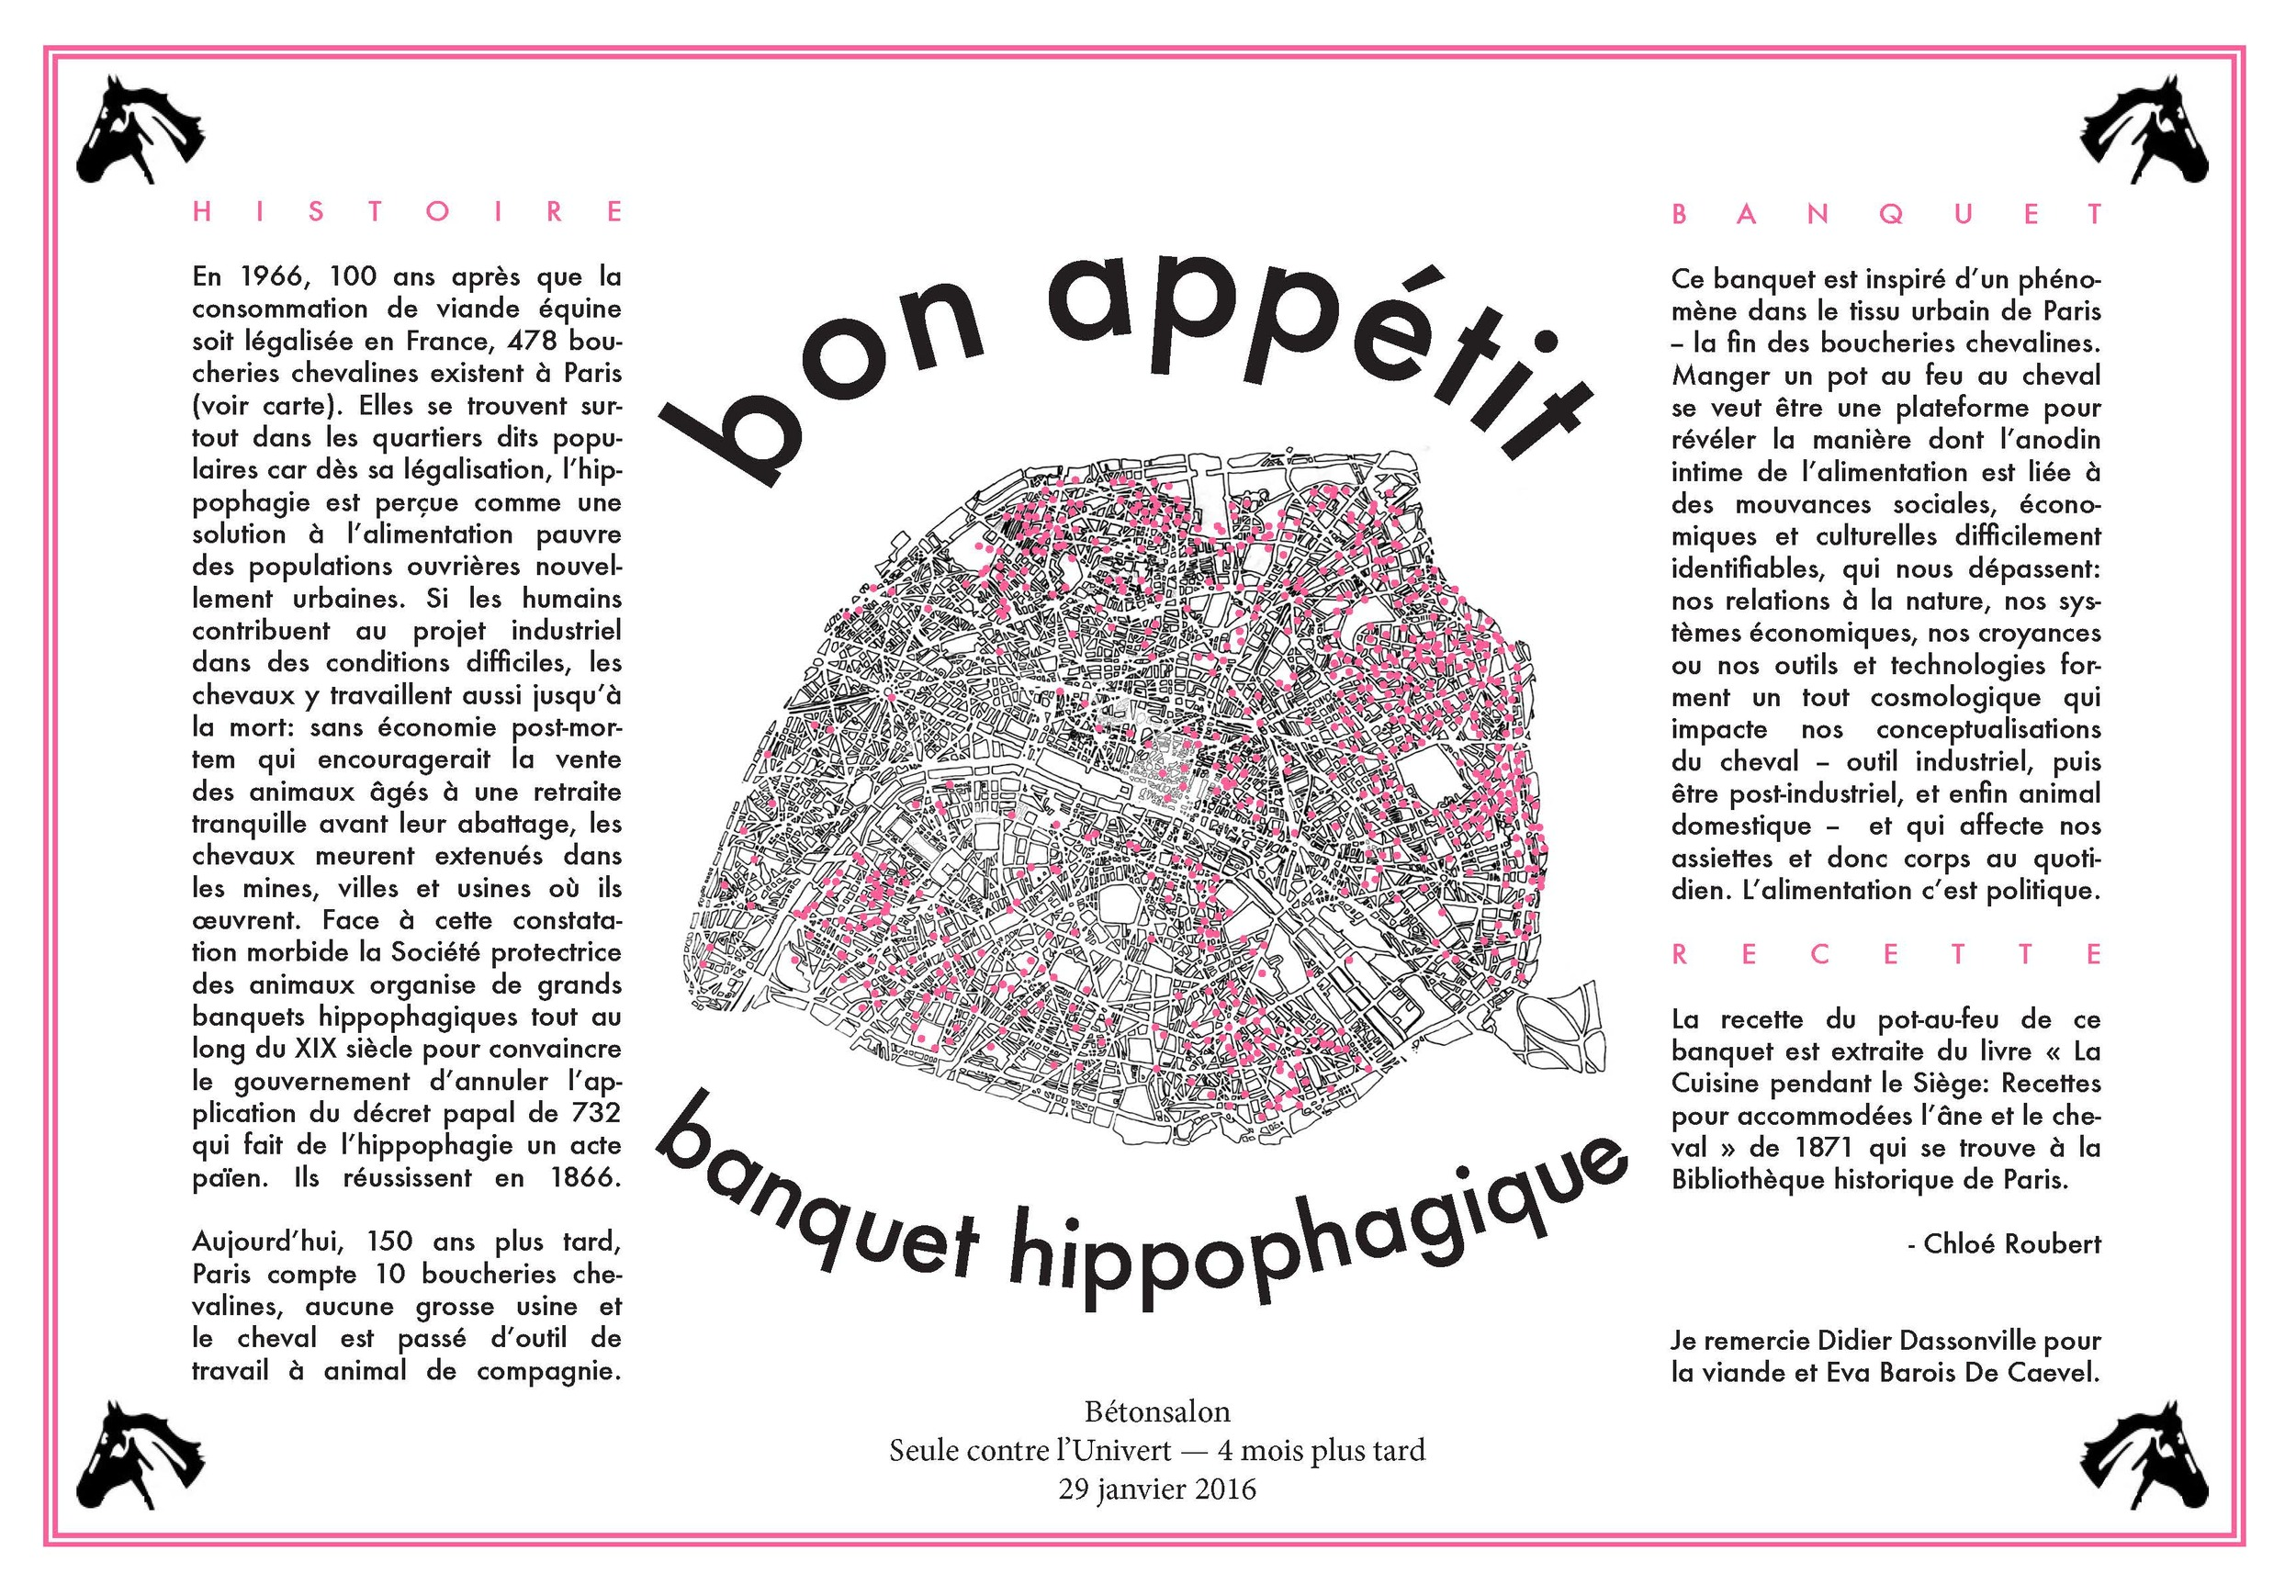 This placemat presents the location of horse butchers in Paris in 1966, 100 years after the legalisation of horse meat consumption.